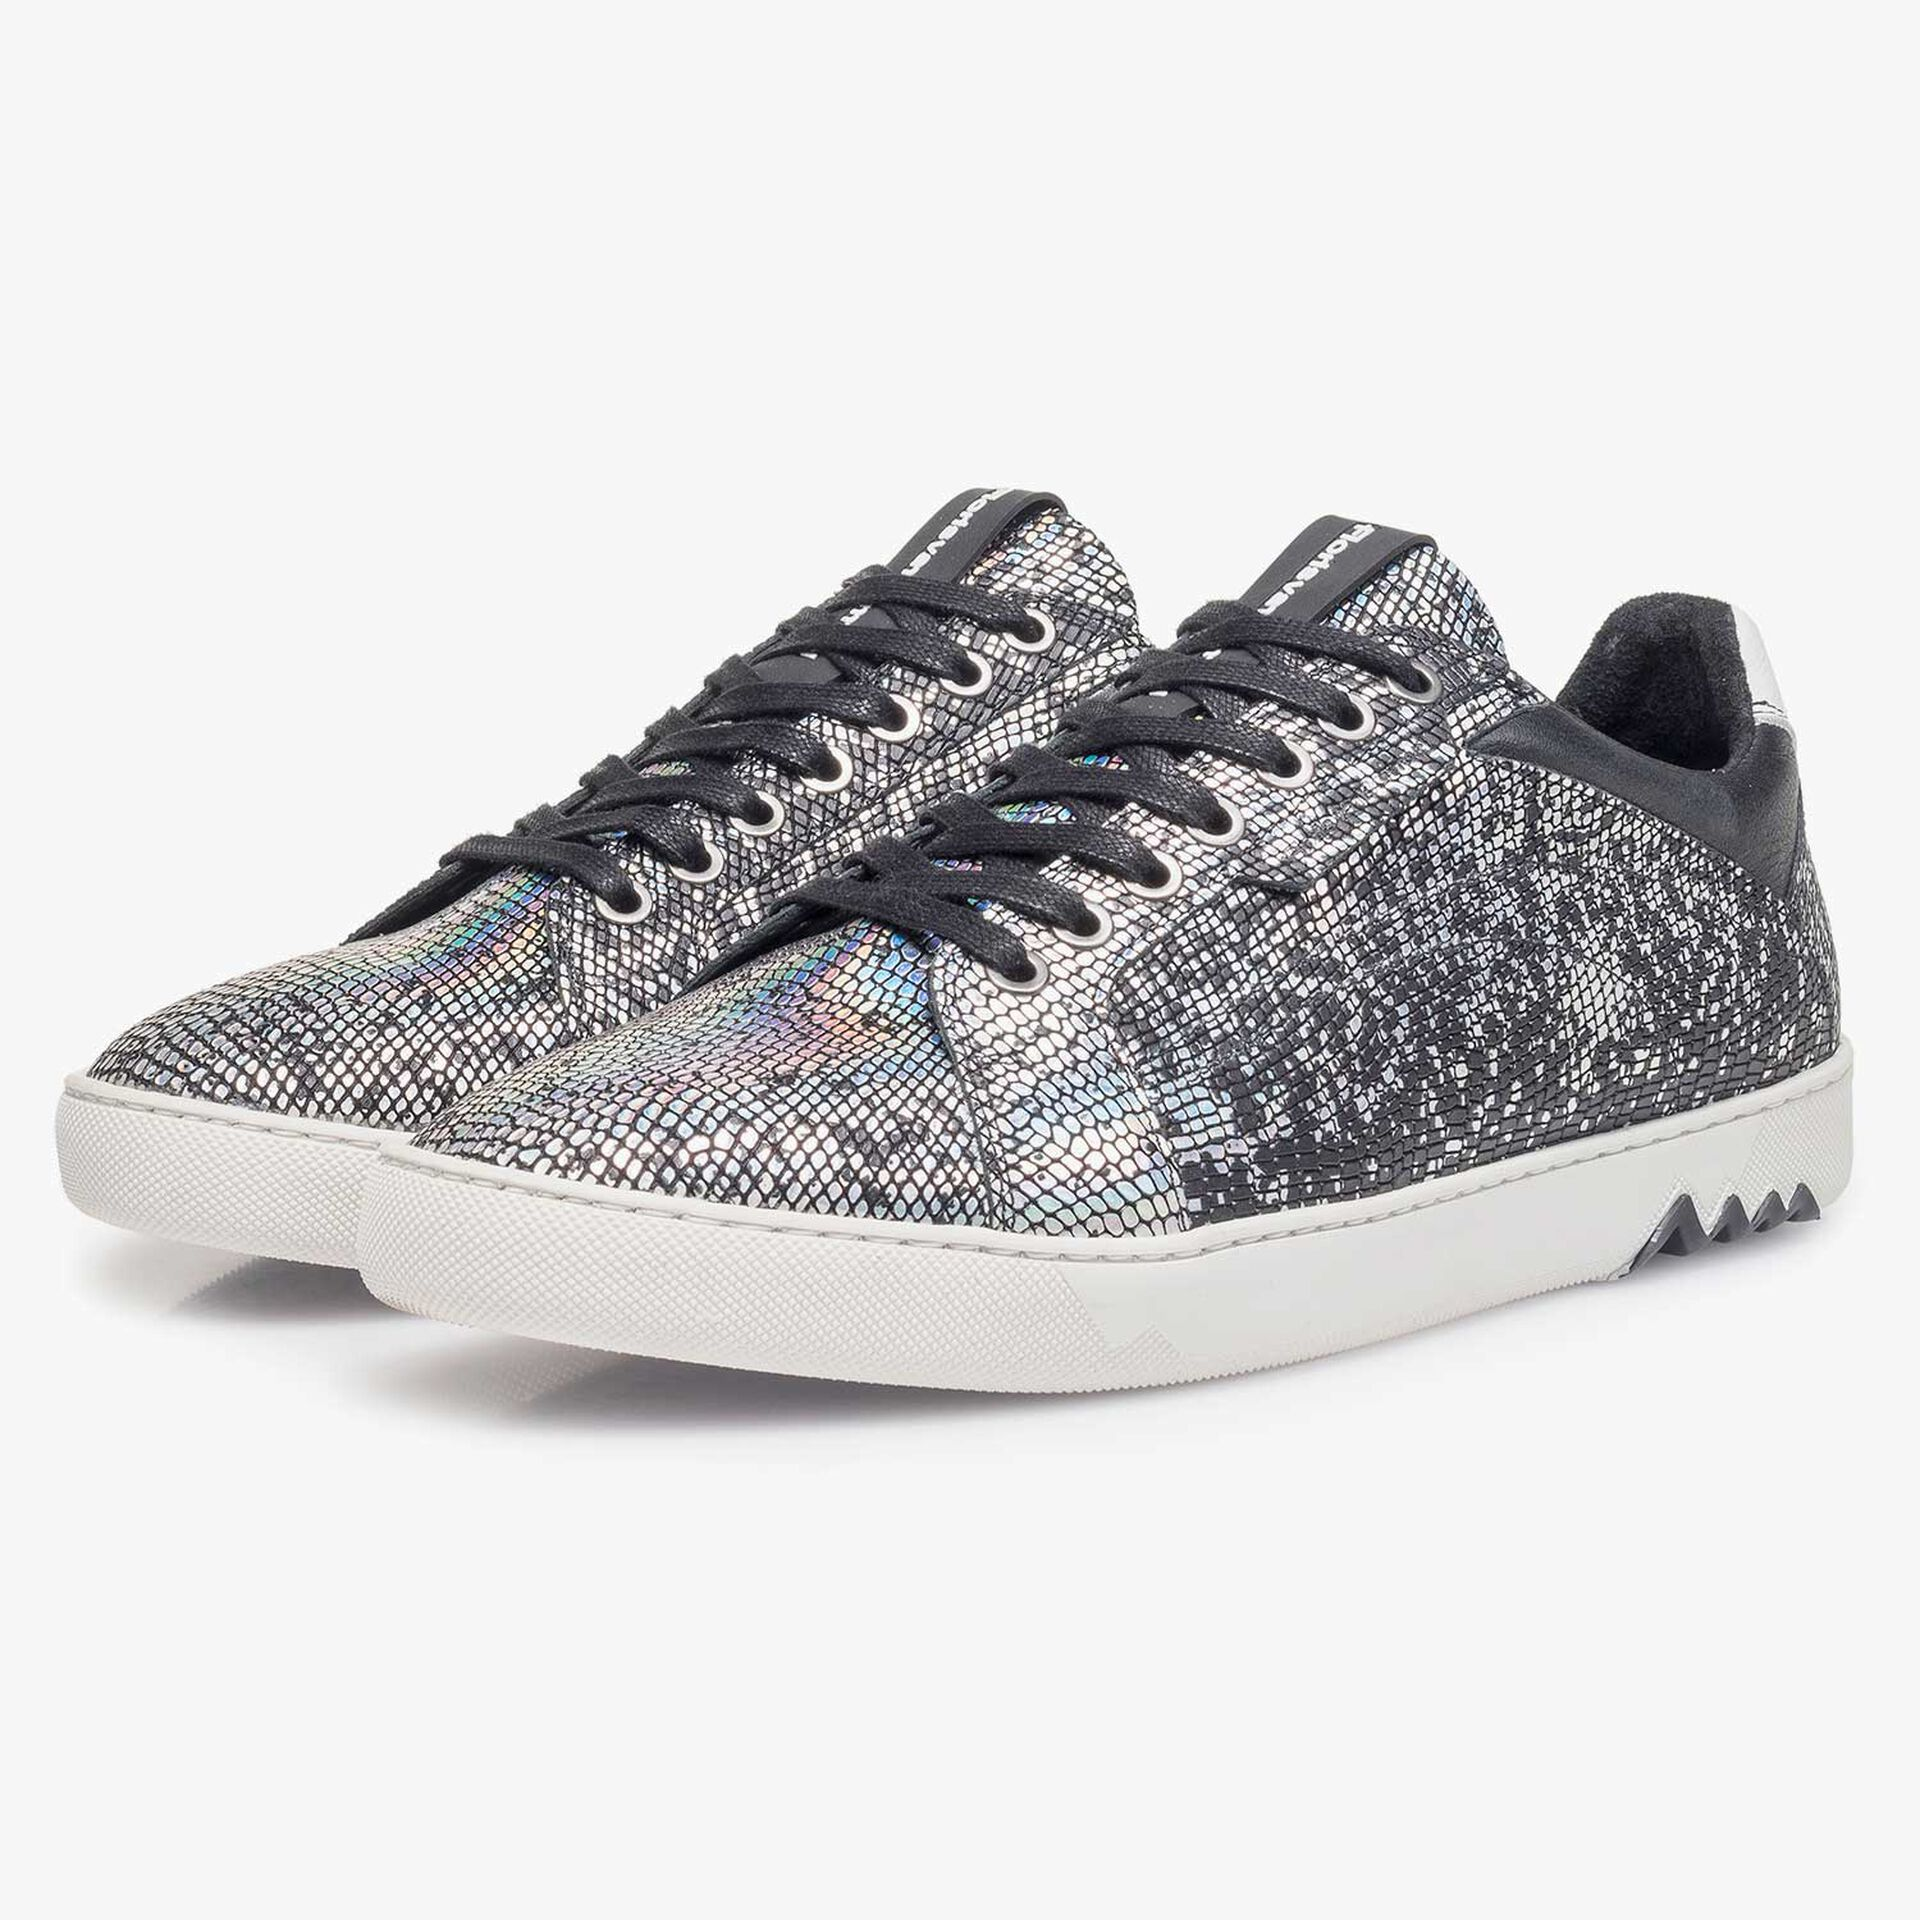 Silver-coloured premium leather lace shoe with metallic print